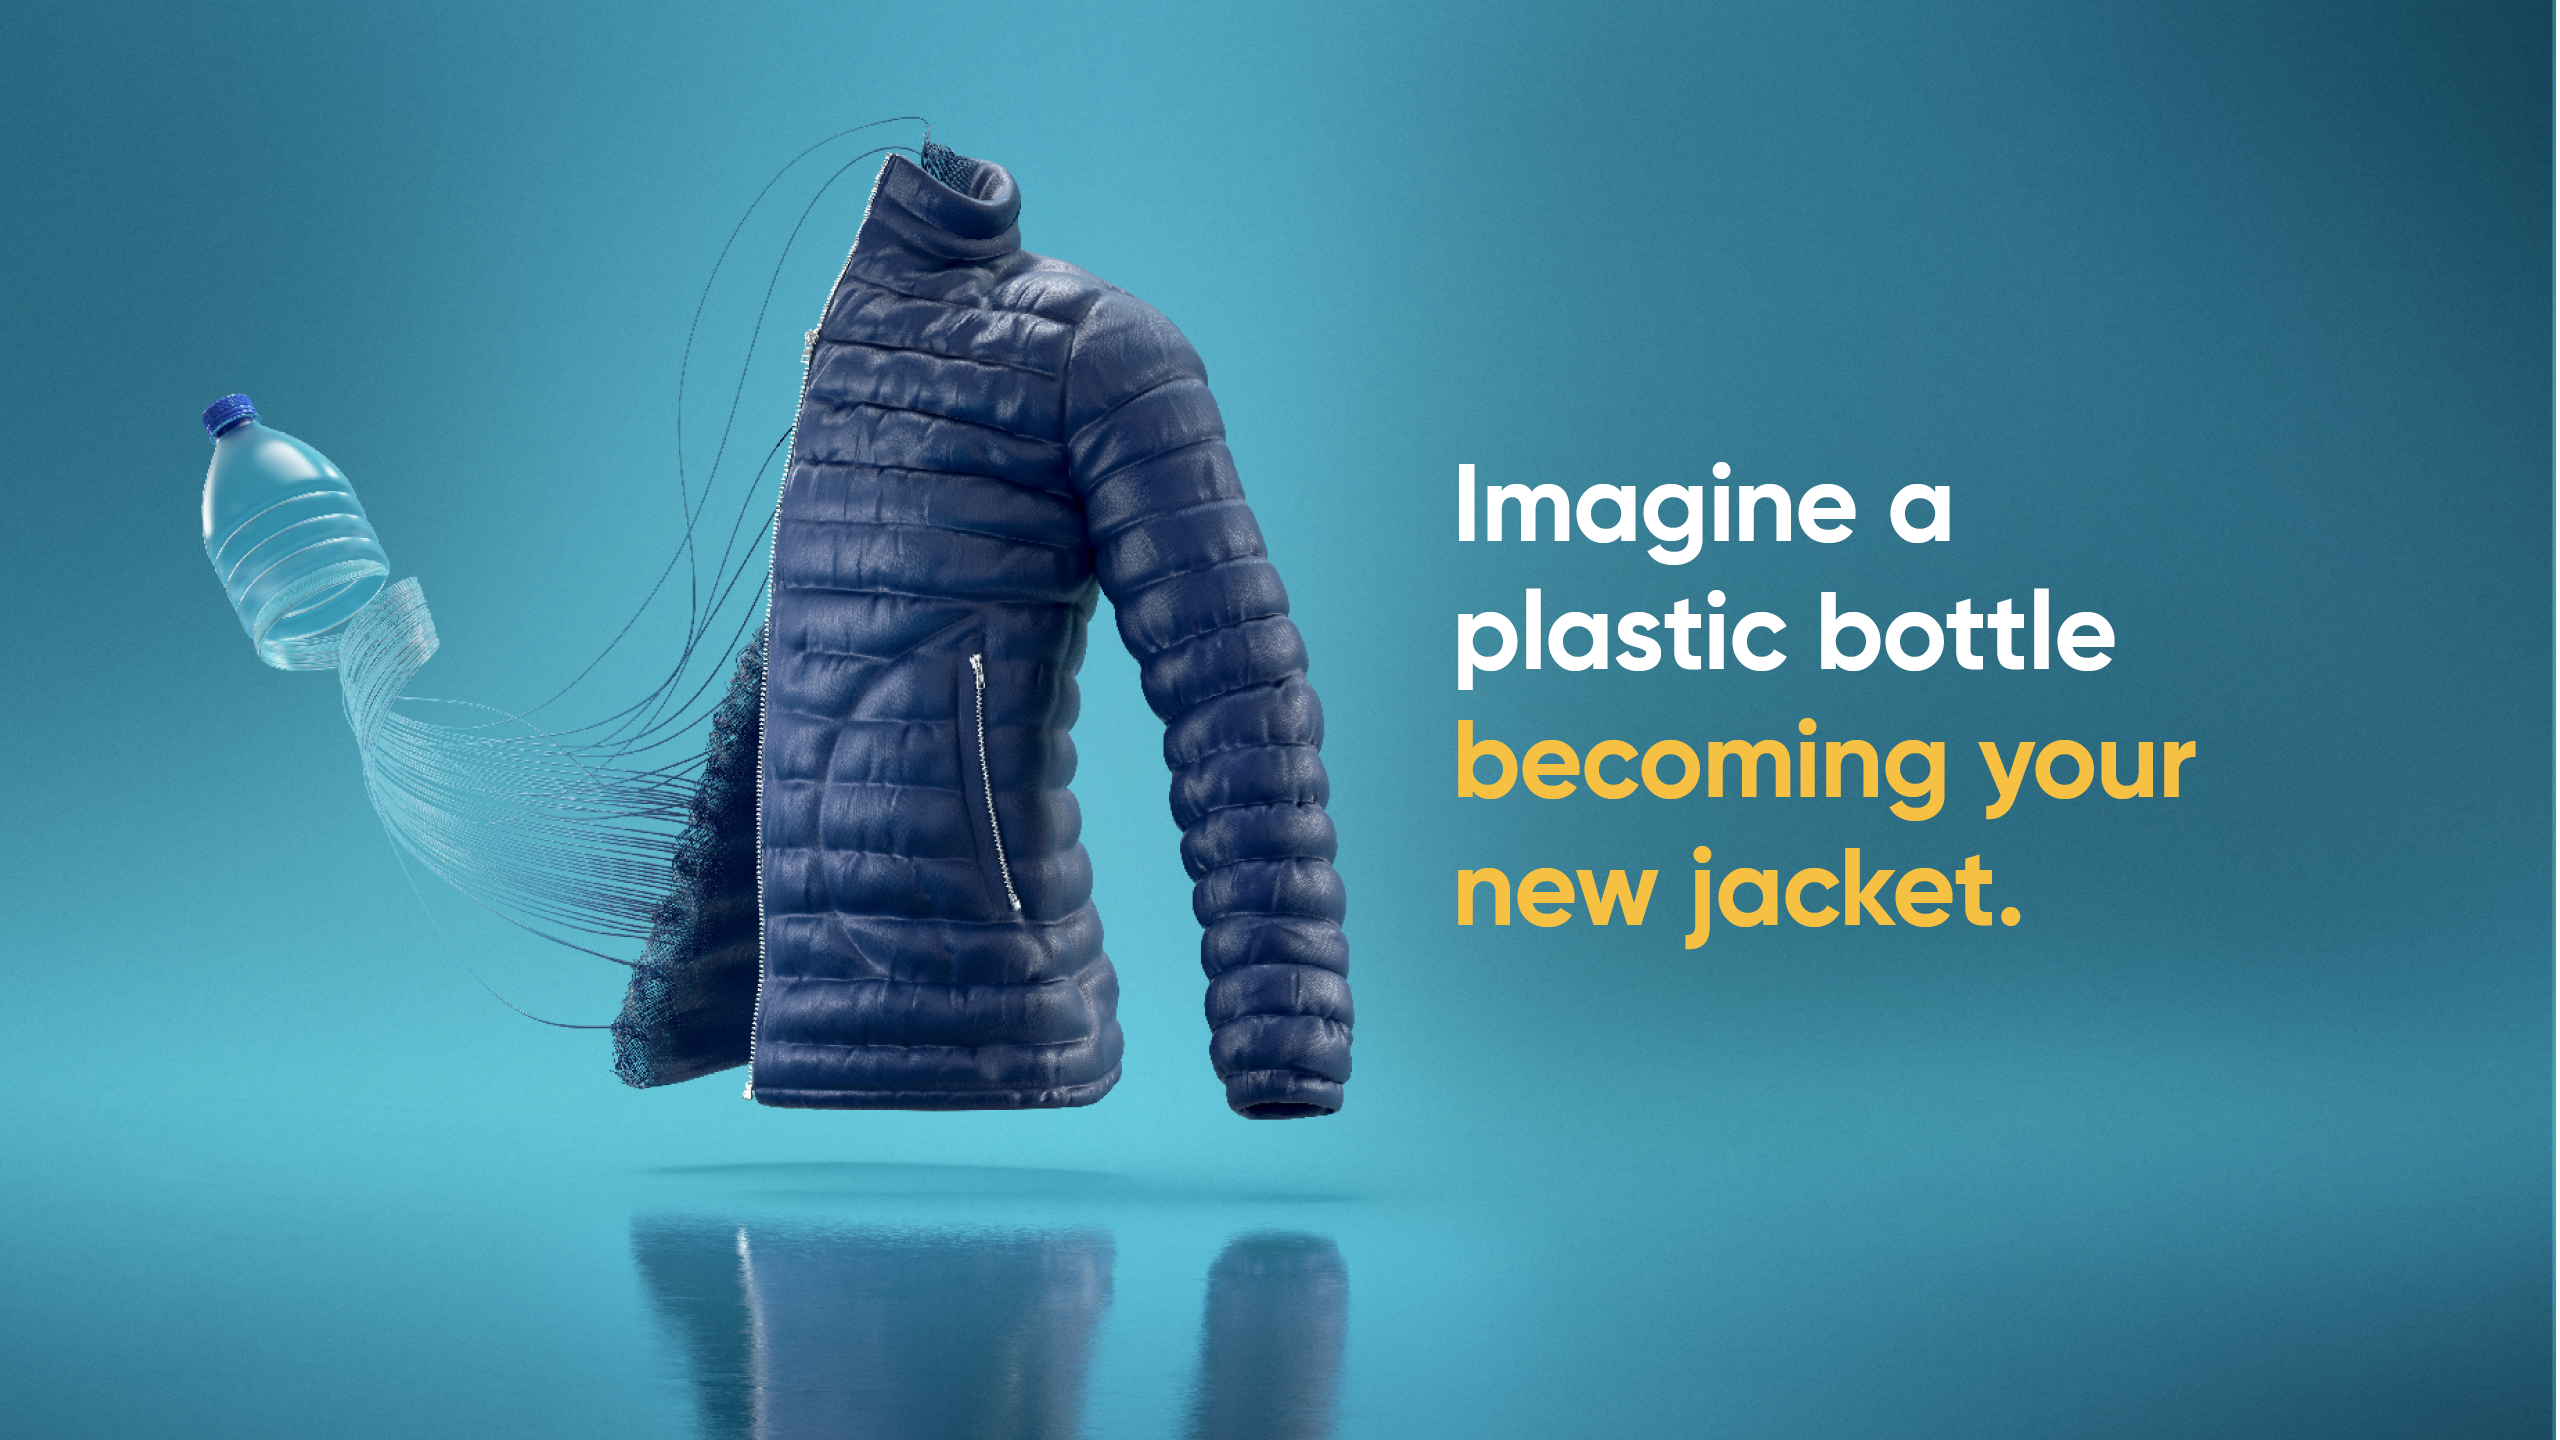 imagine a plastic bottle becoming your new jacket.